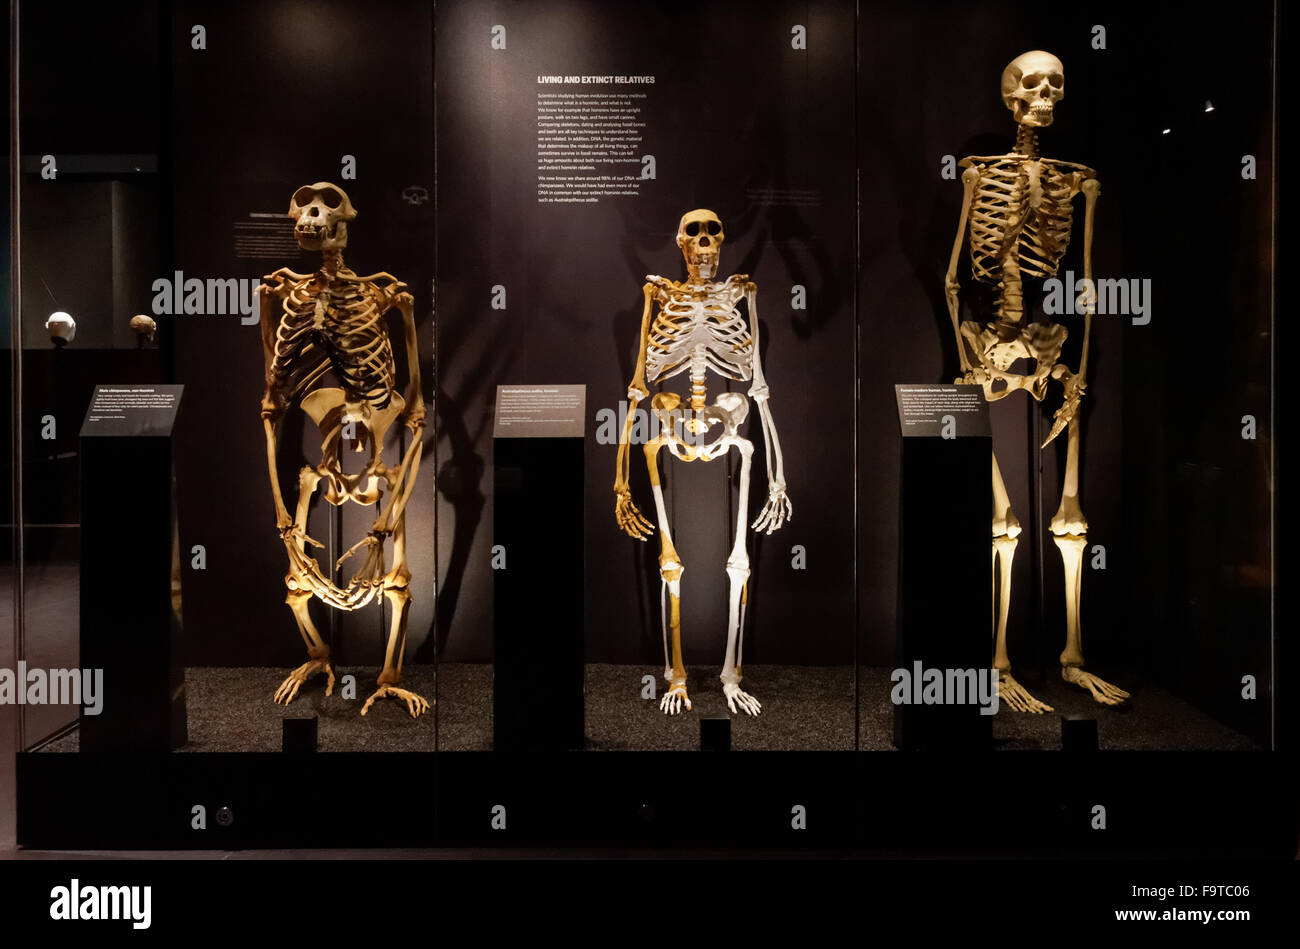 Human evolution gallery at the Natural History Museum in London ...